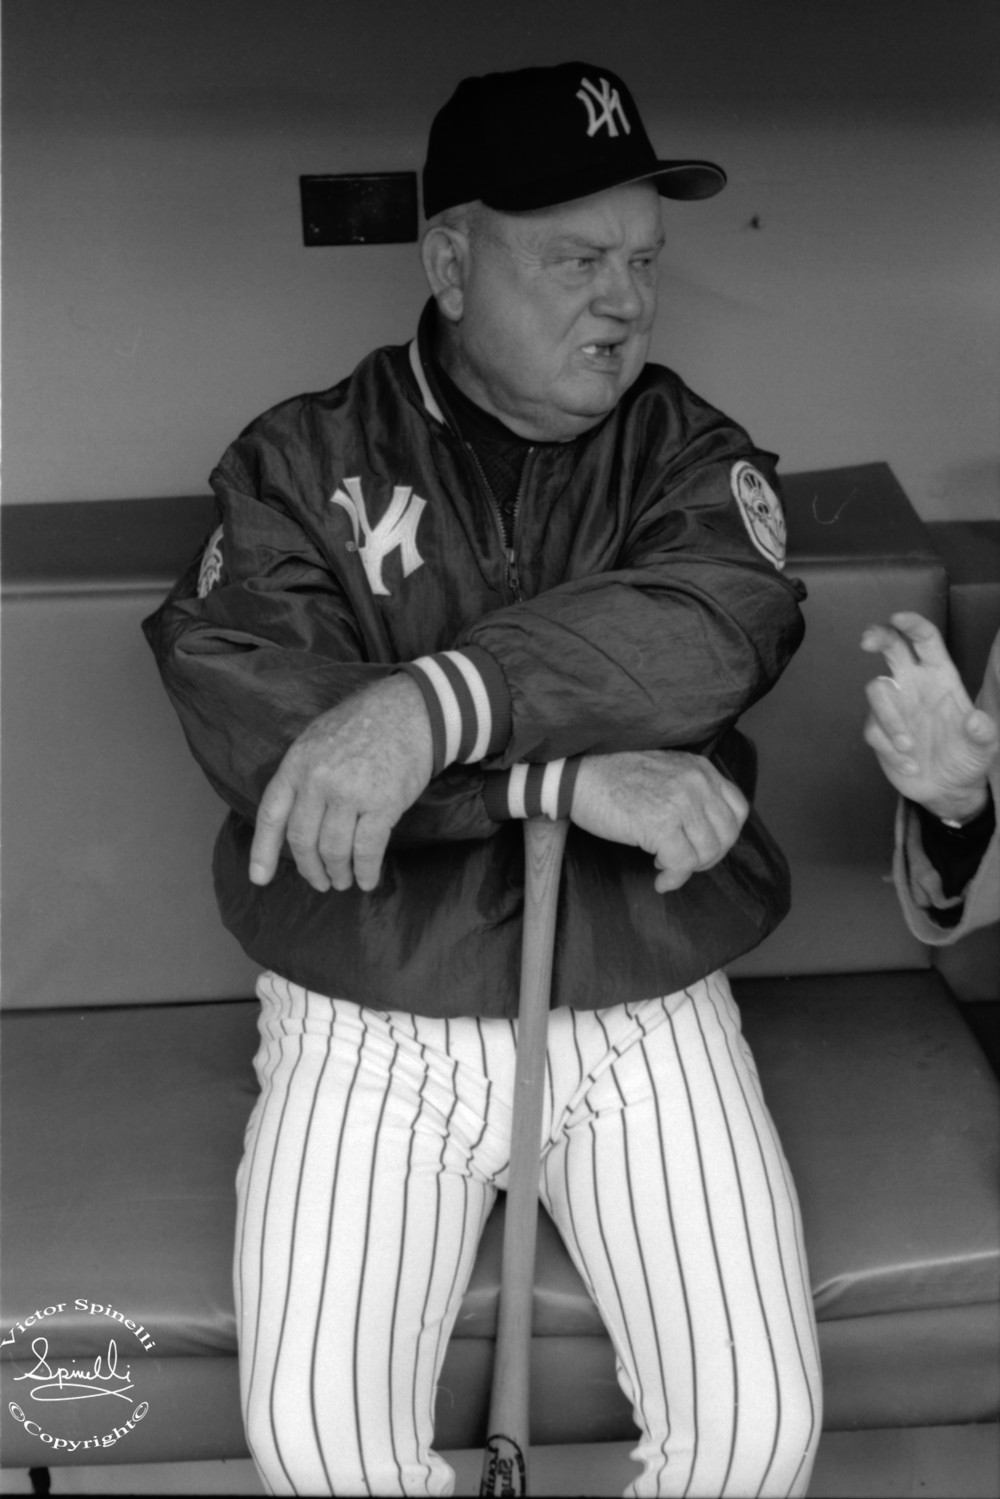 "R.I.P Don Zimmer. A baseball legend. I took this photograph of ""Zim"" in the New York Yankee dugout during the 1999 World Series. ©Victor Spinelli Archive.   Full story on NPR here:  http://www.npr.org/blogs/thetwo-way/2014/06/05/319058748/baseball-man-don-zimmer-dies-ending-an-epic-sports-career?sc=17&f=1001&utm_source=iosnewsapp&utm_medium=Email&utm_campaign=app"